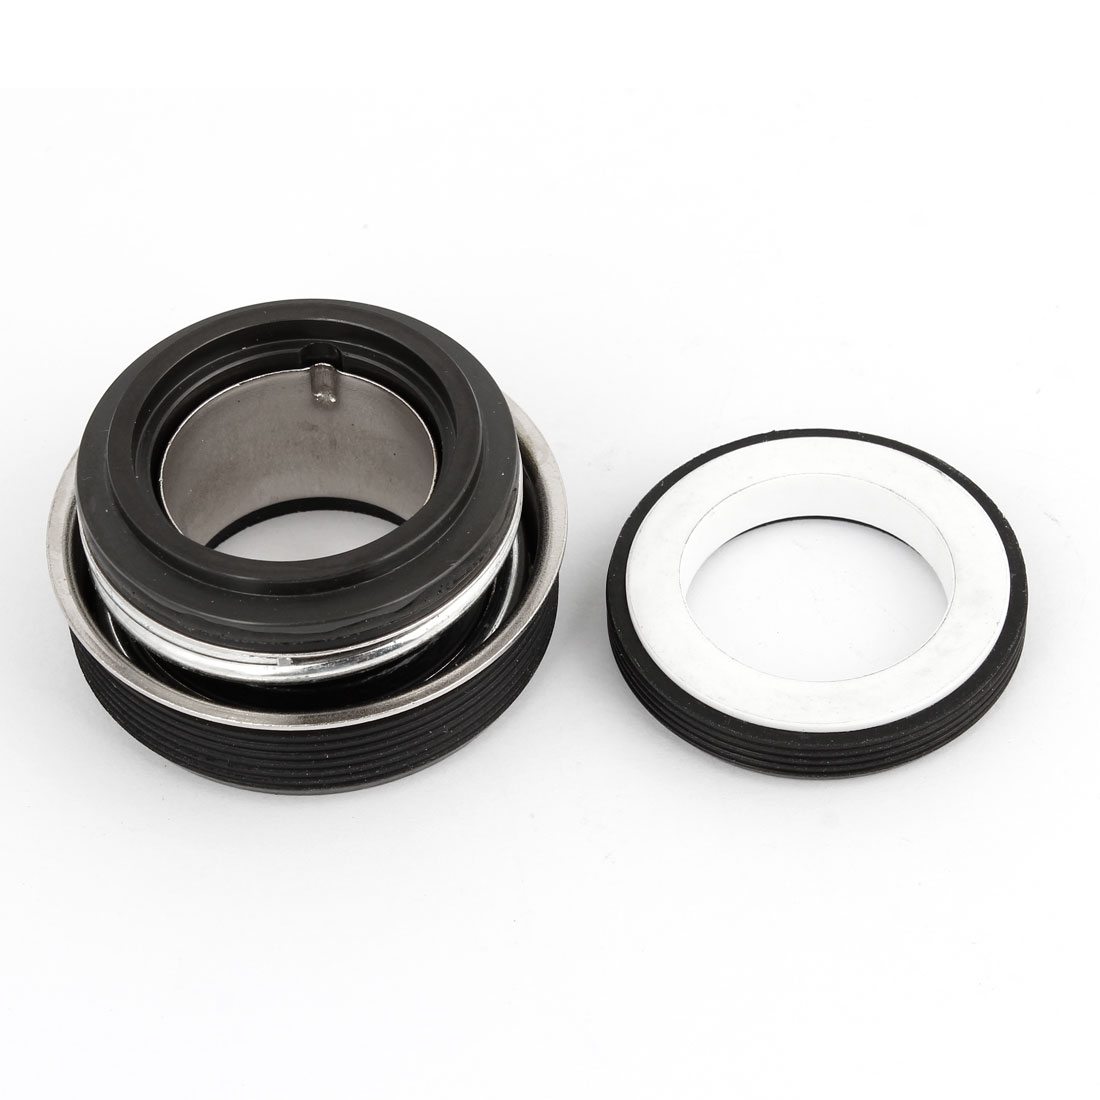 Air Conditioner 27mm Internal Dia Mechanical Shaft Seal